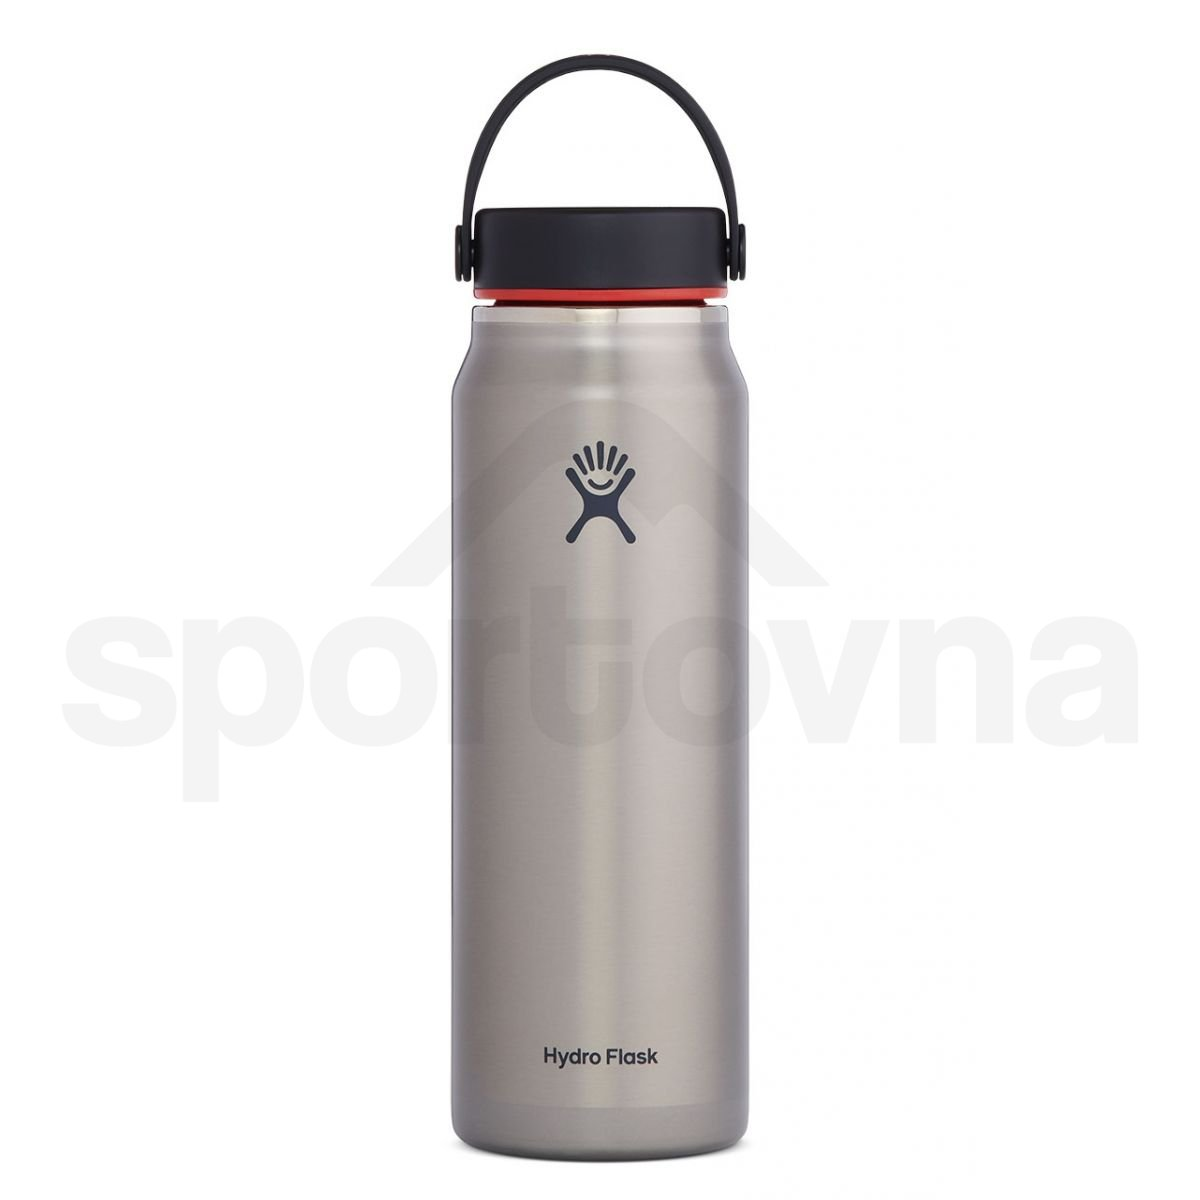 Termoska Hydro Flask 32oz Lightweight Wide - šedá